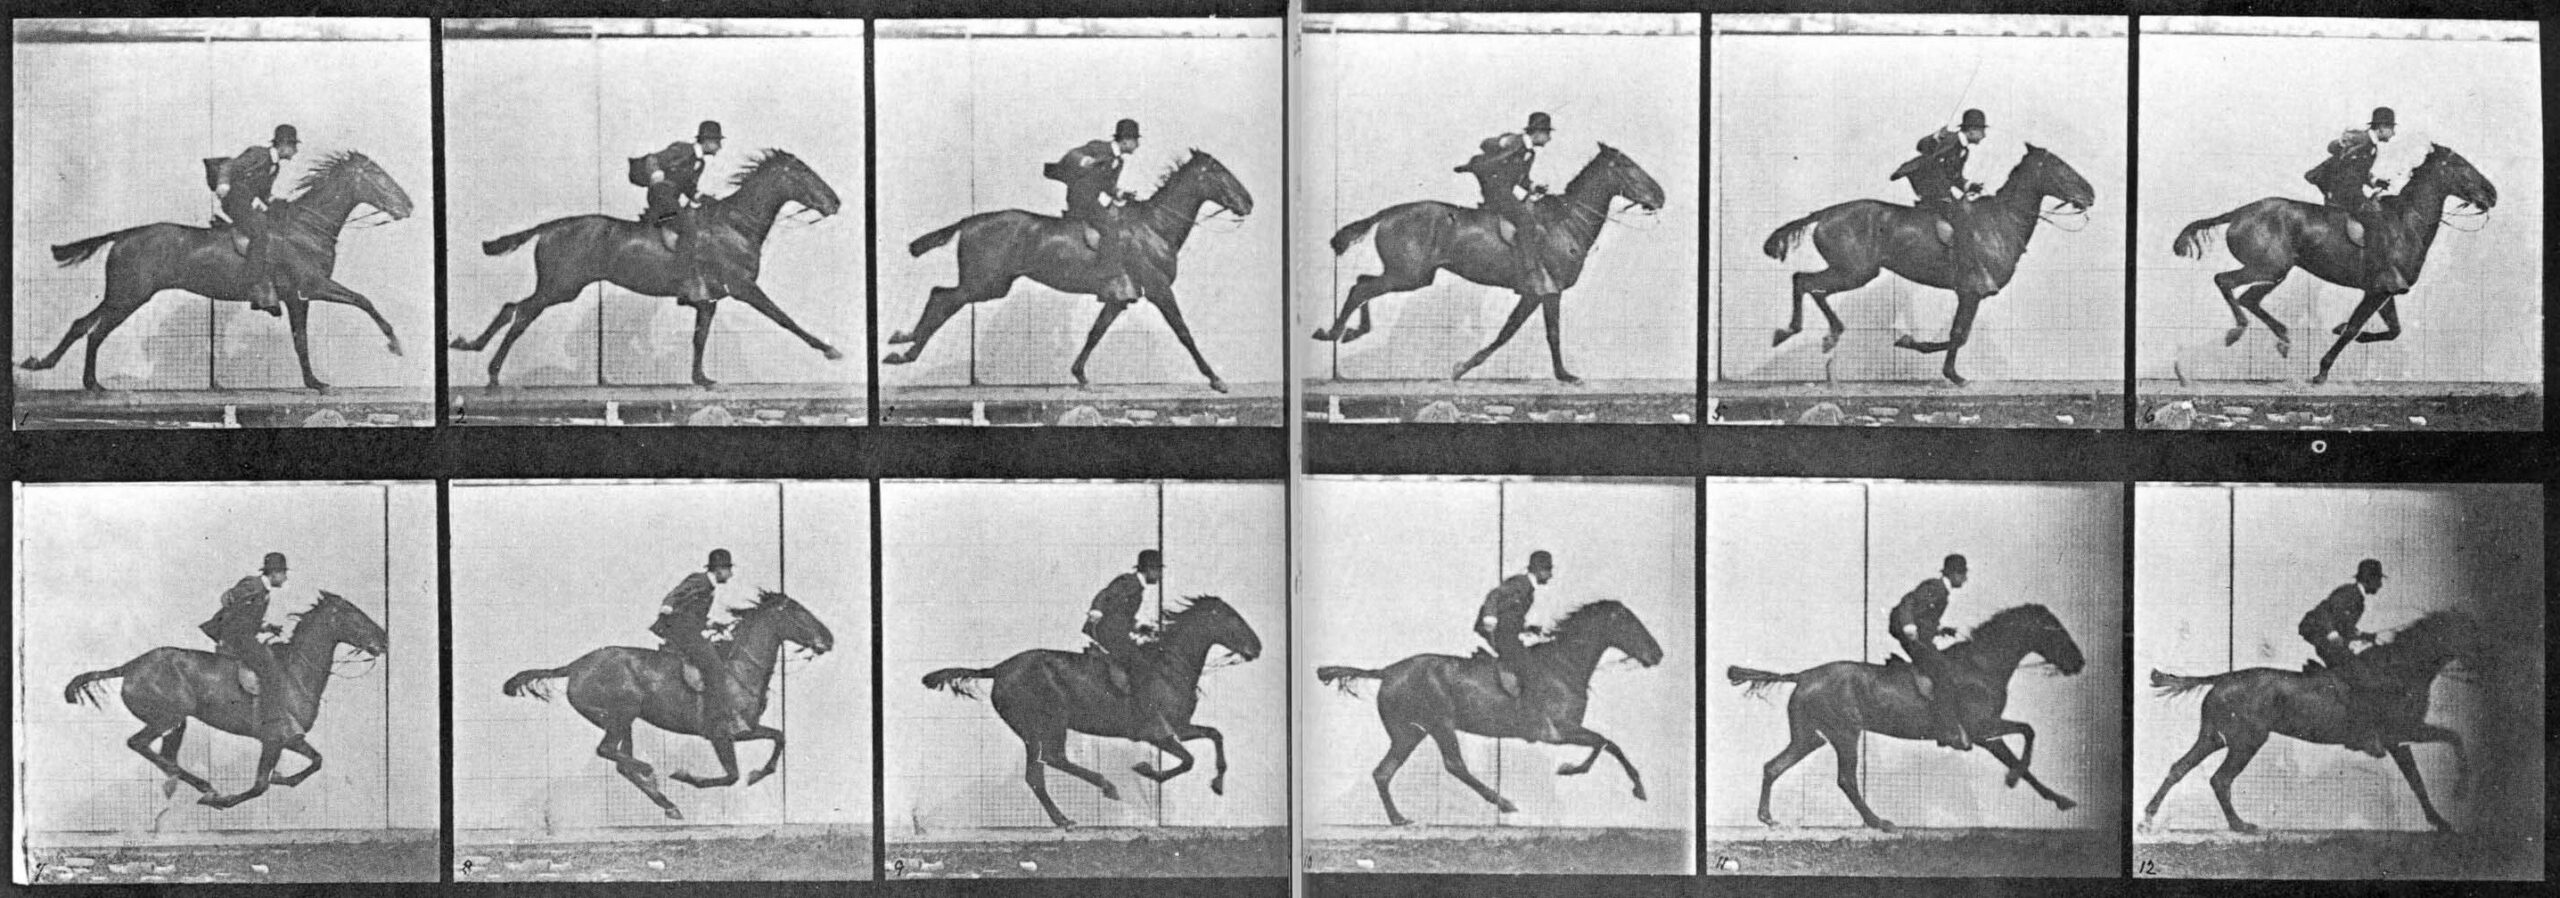 Sallie Gardner at a Gallop 1878 The Horse in Motion